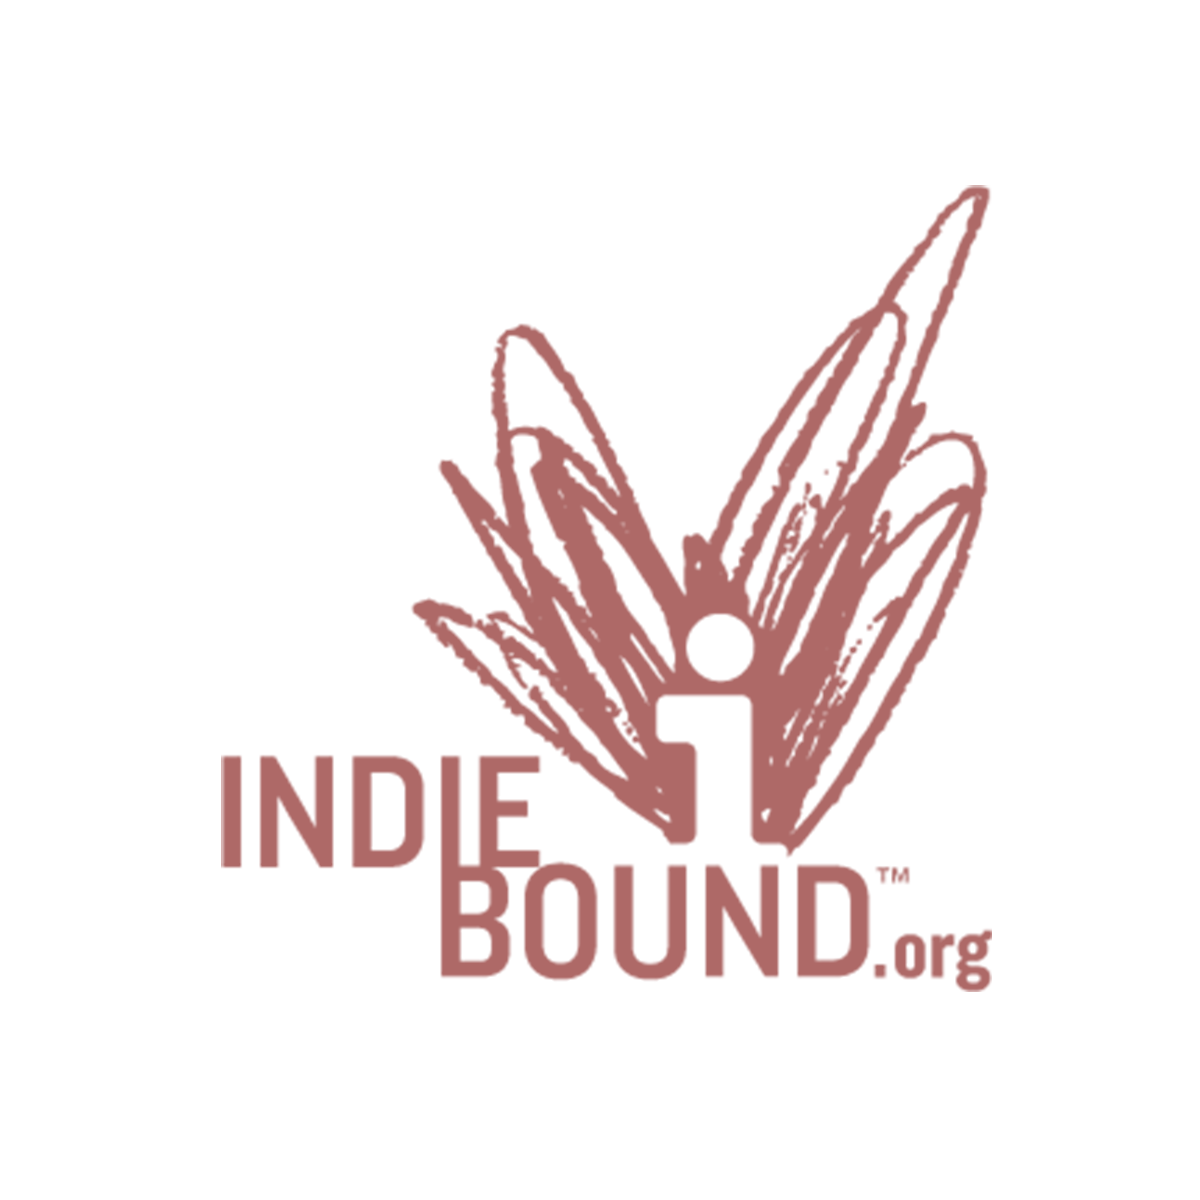 Buy One Heart at a Time on Indie Bound